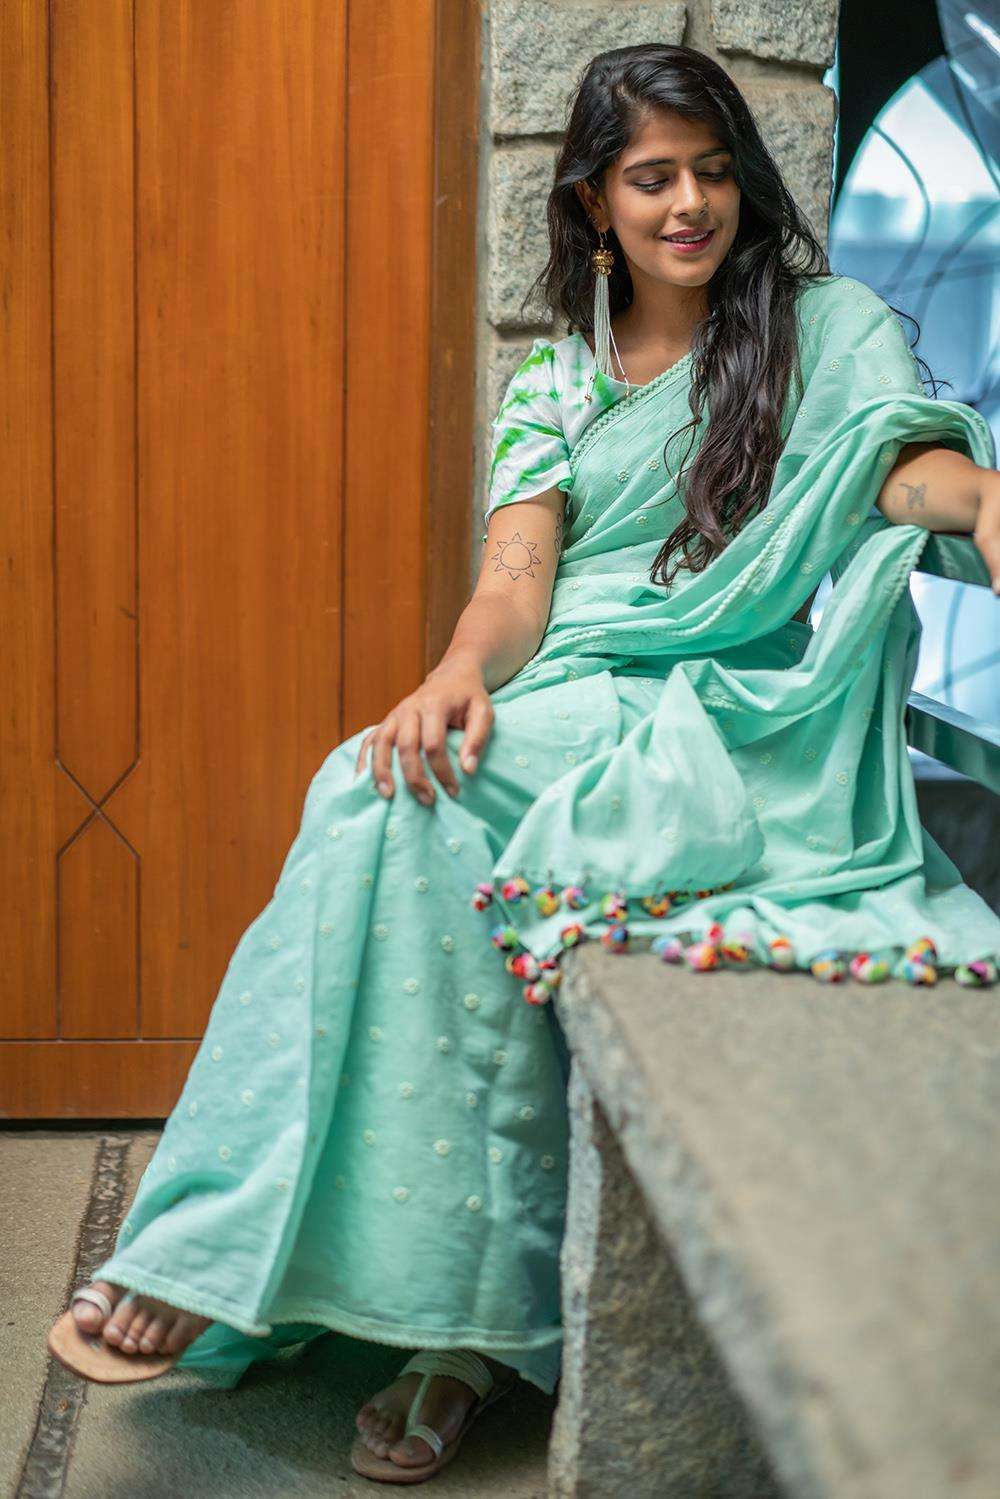 Sea green mul cotton saree with floral threadwork motifs and pom pom edging - House of Blouse